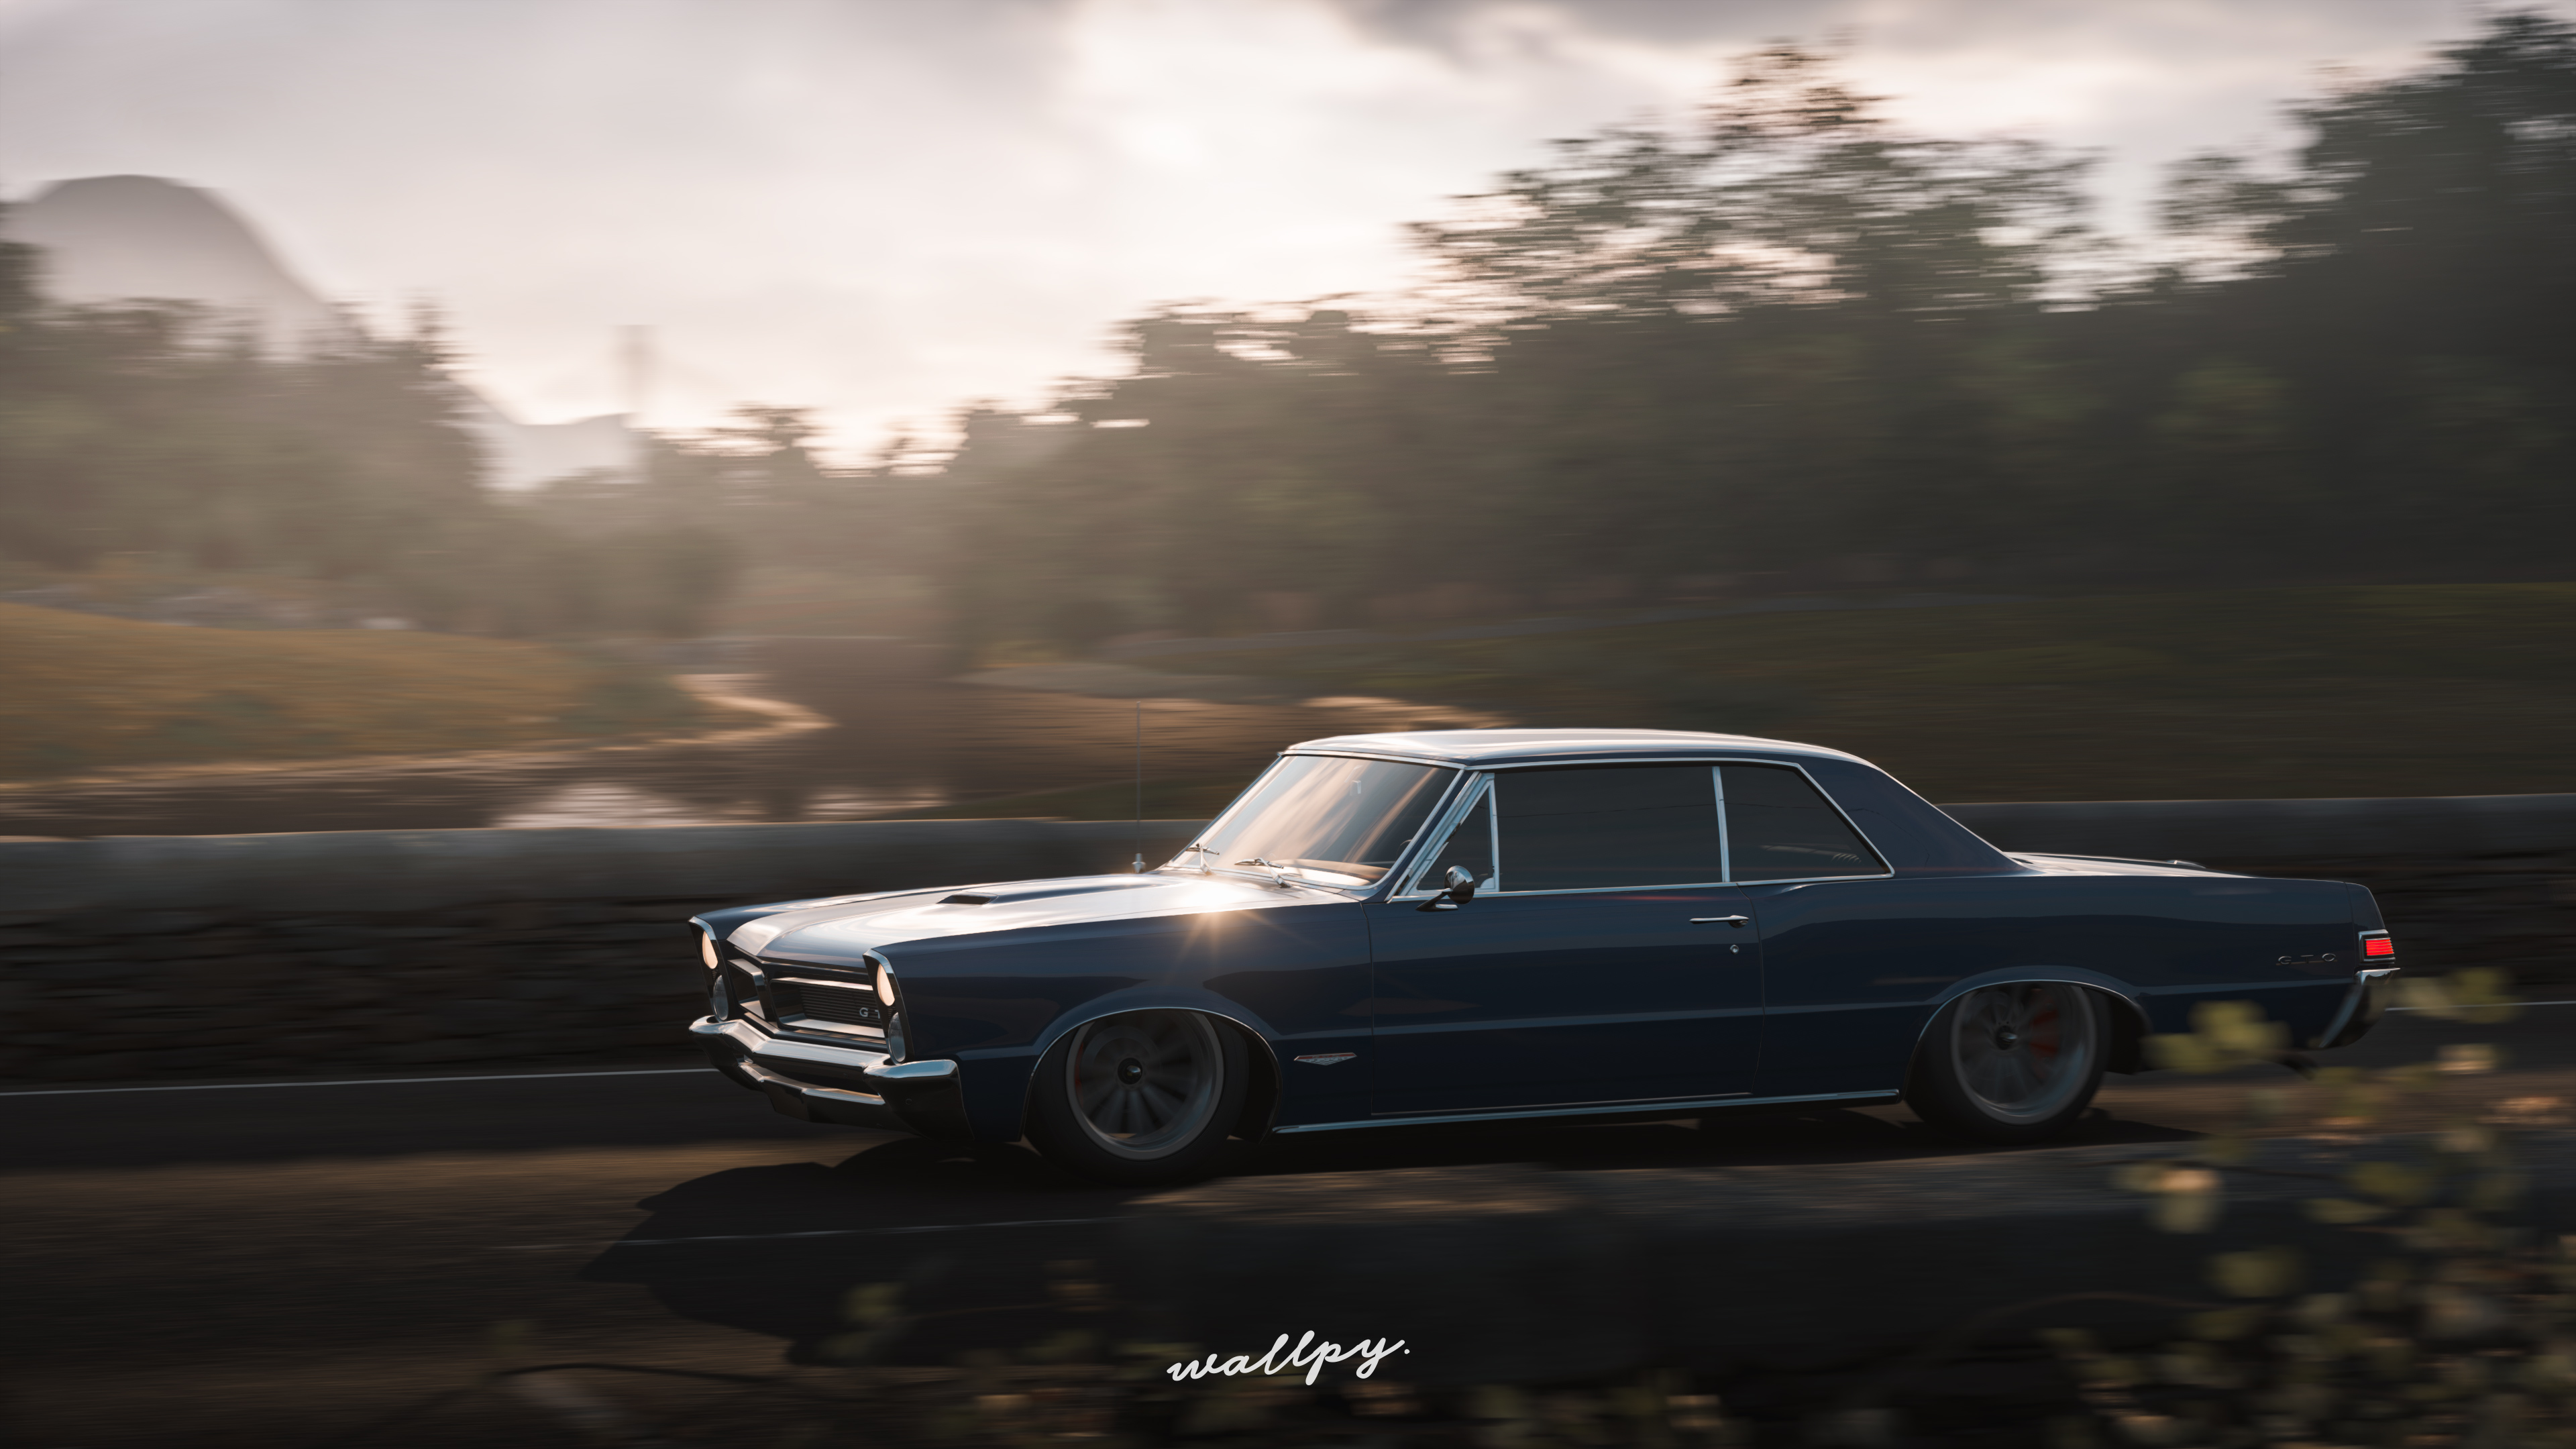 Forza Horizon 4 Classic Cars 4k, HD Games, 4k Wallpapers